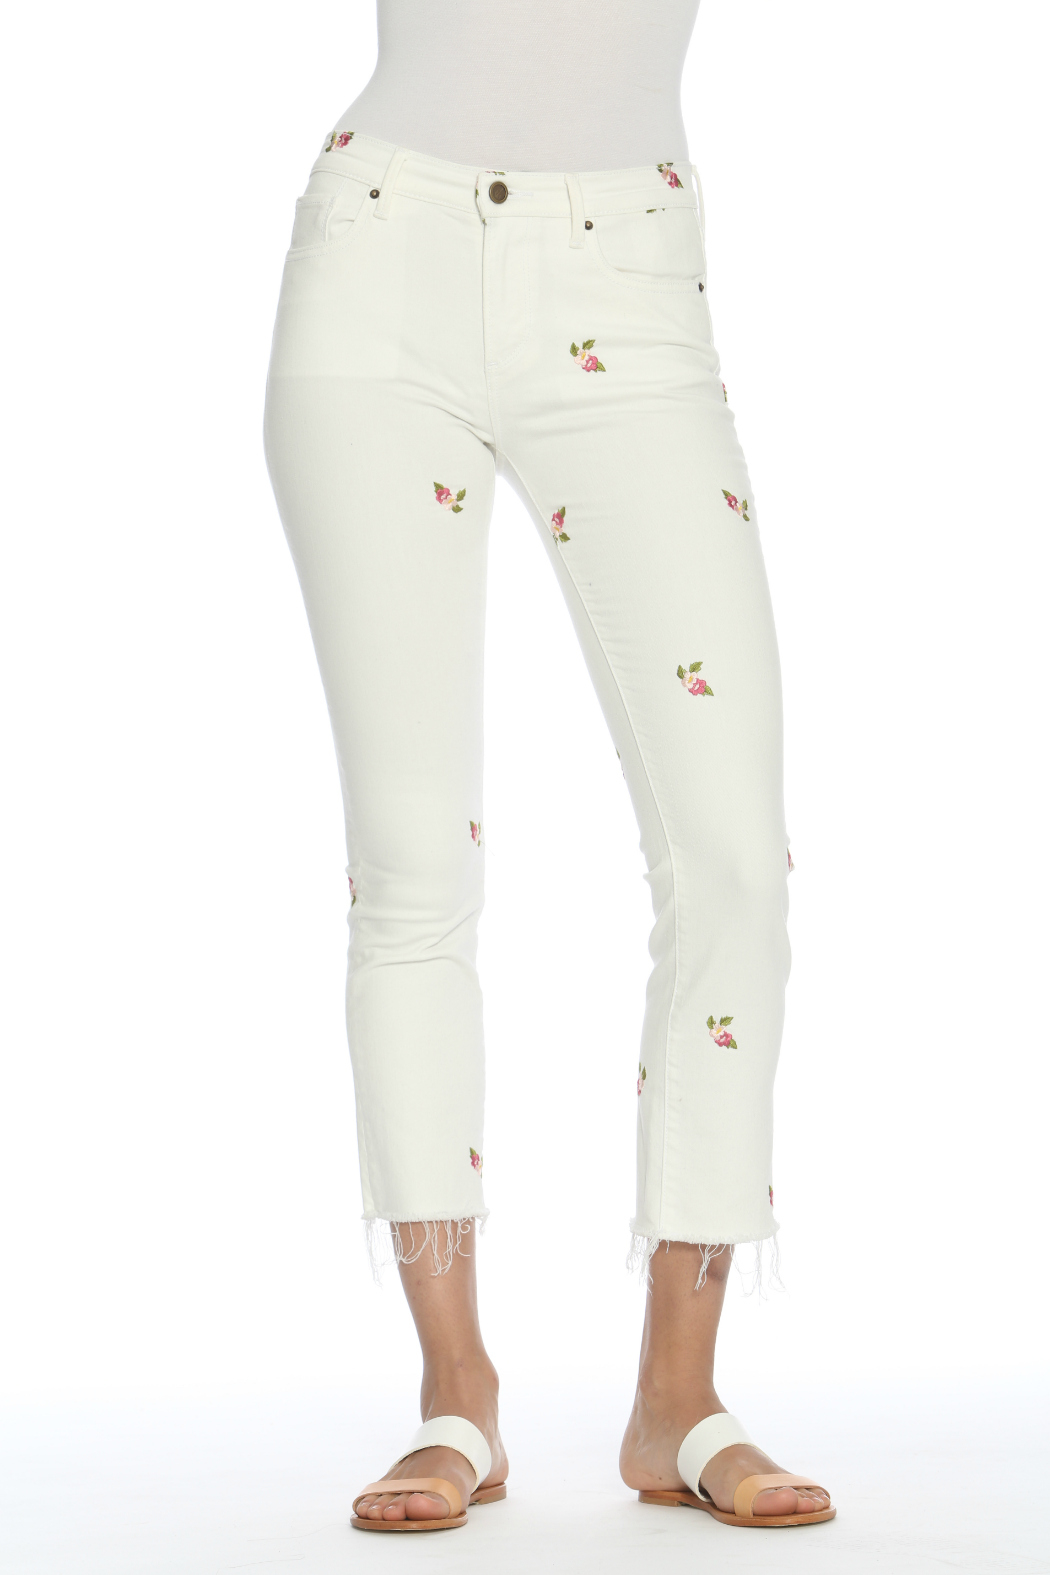 Driftwood Candace Crop White Jeans w Rosebuds - Main Image